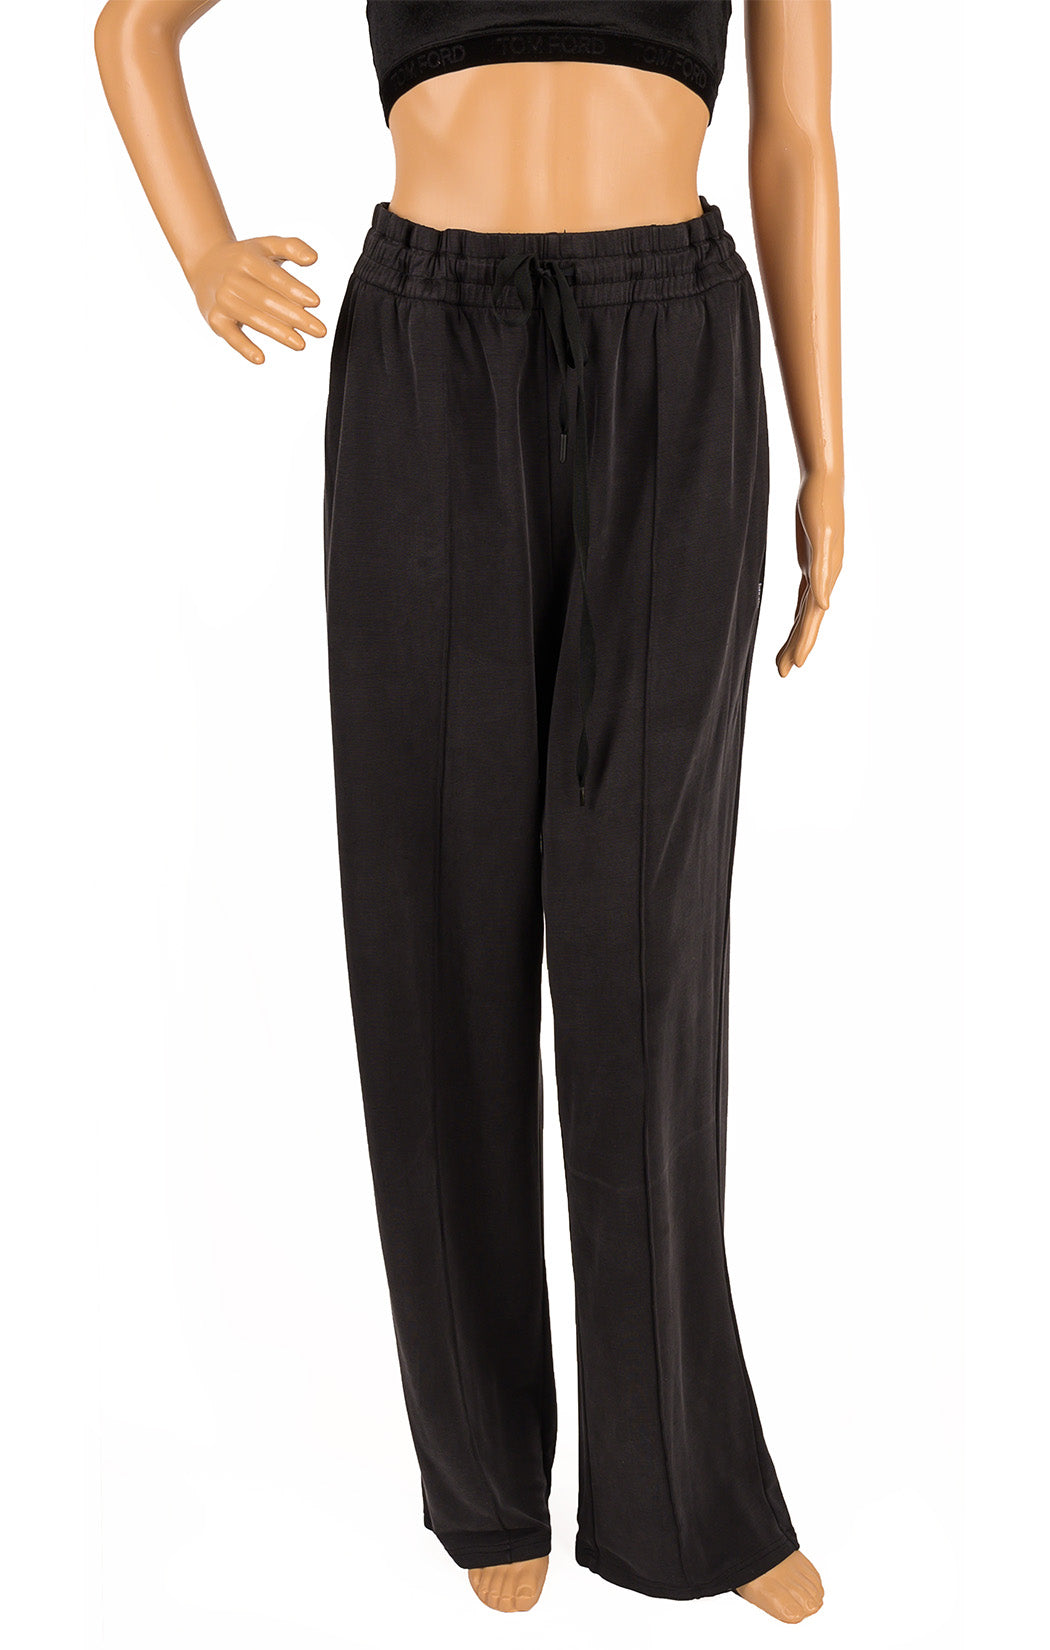 Front view of ALEXANDER WANG Sweatpants Size: no size tags fits like large